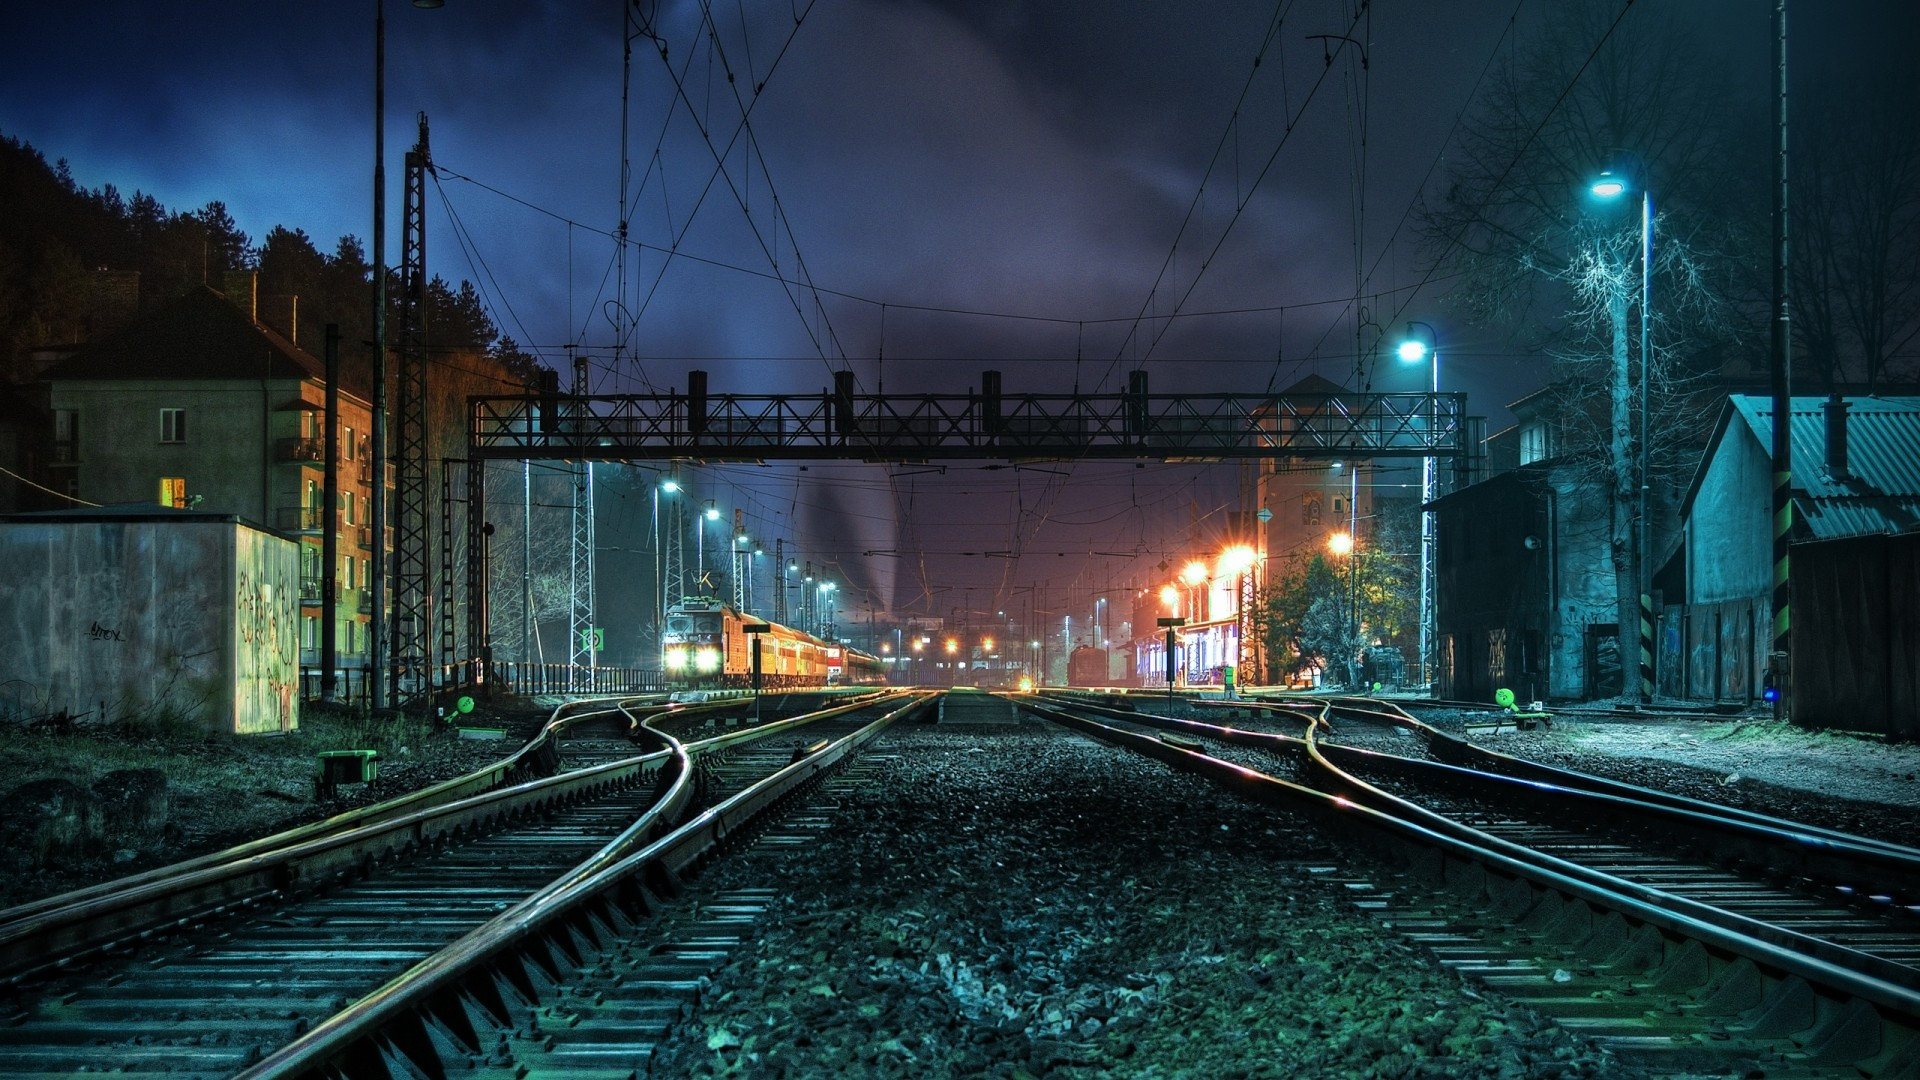 Interesting Quotes Hd Wallpapers Daily Wallpaper The Train Station I Like To Waste My Time